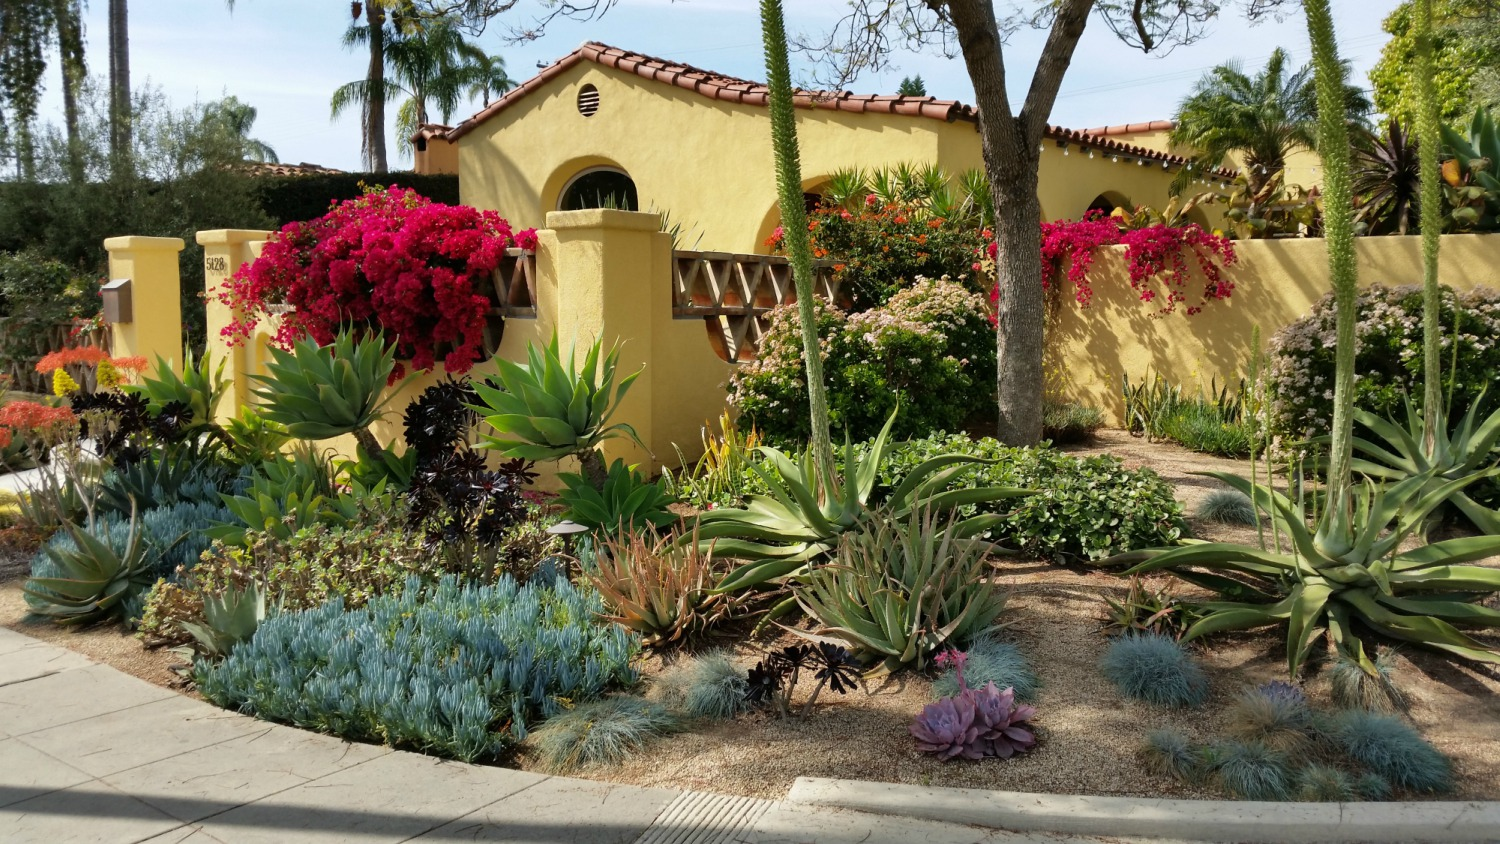 Garden landscape designer san diego landscaping with succulents - Landscape design for small spaces style ...